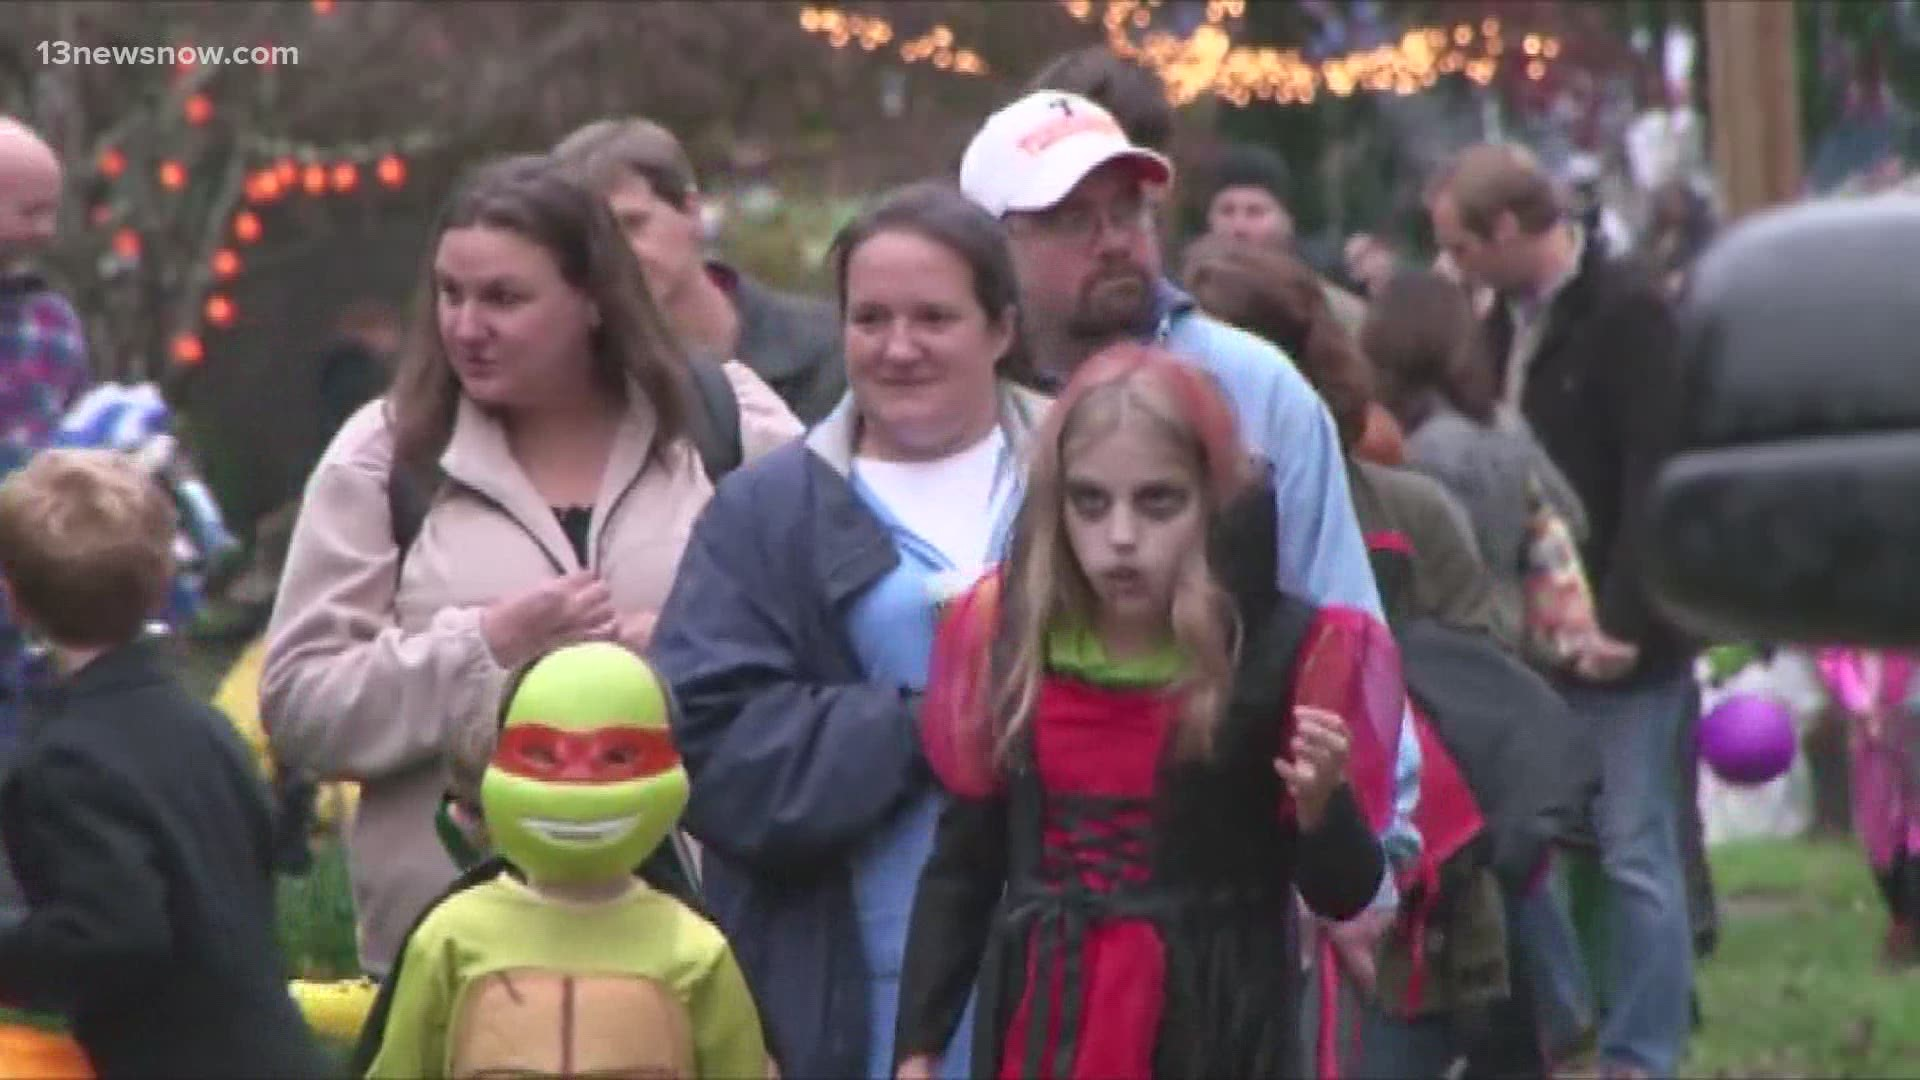 Childrens Halloween Events 2020 Tyler Texas Is Halloween canceled this year? | cbs19.tv